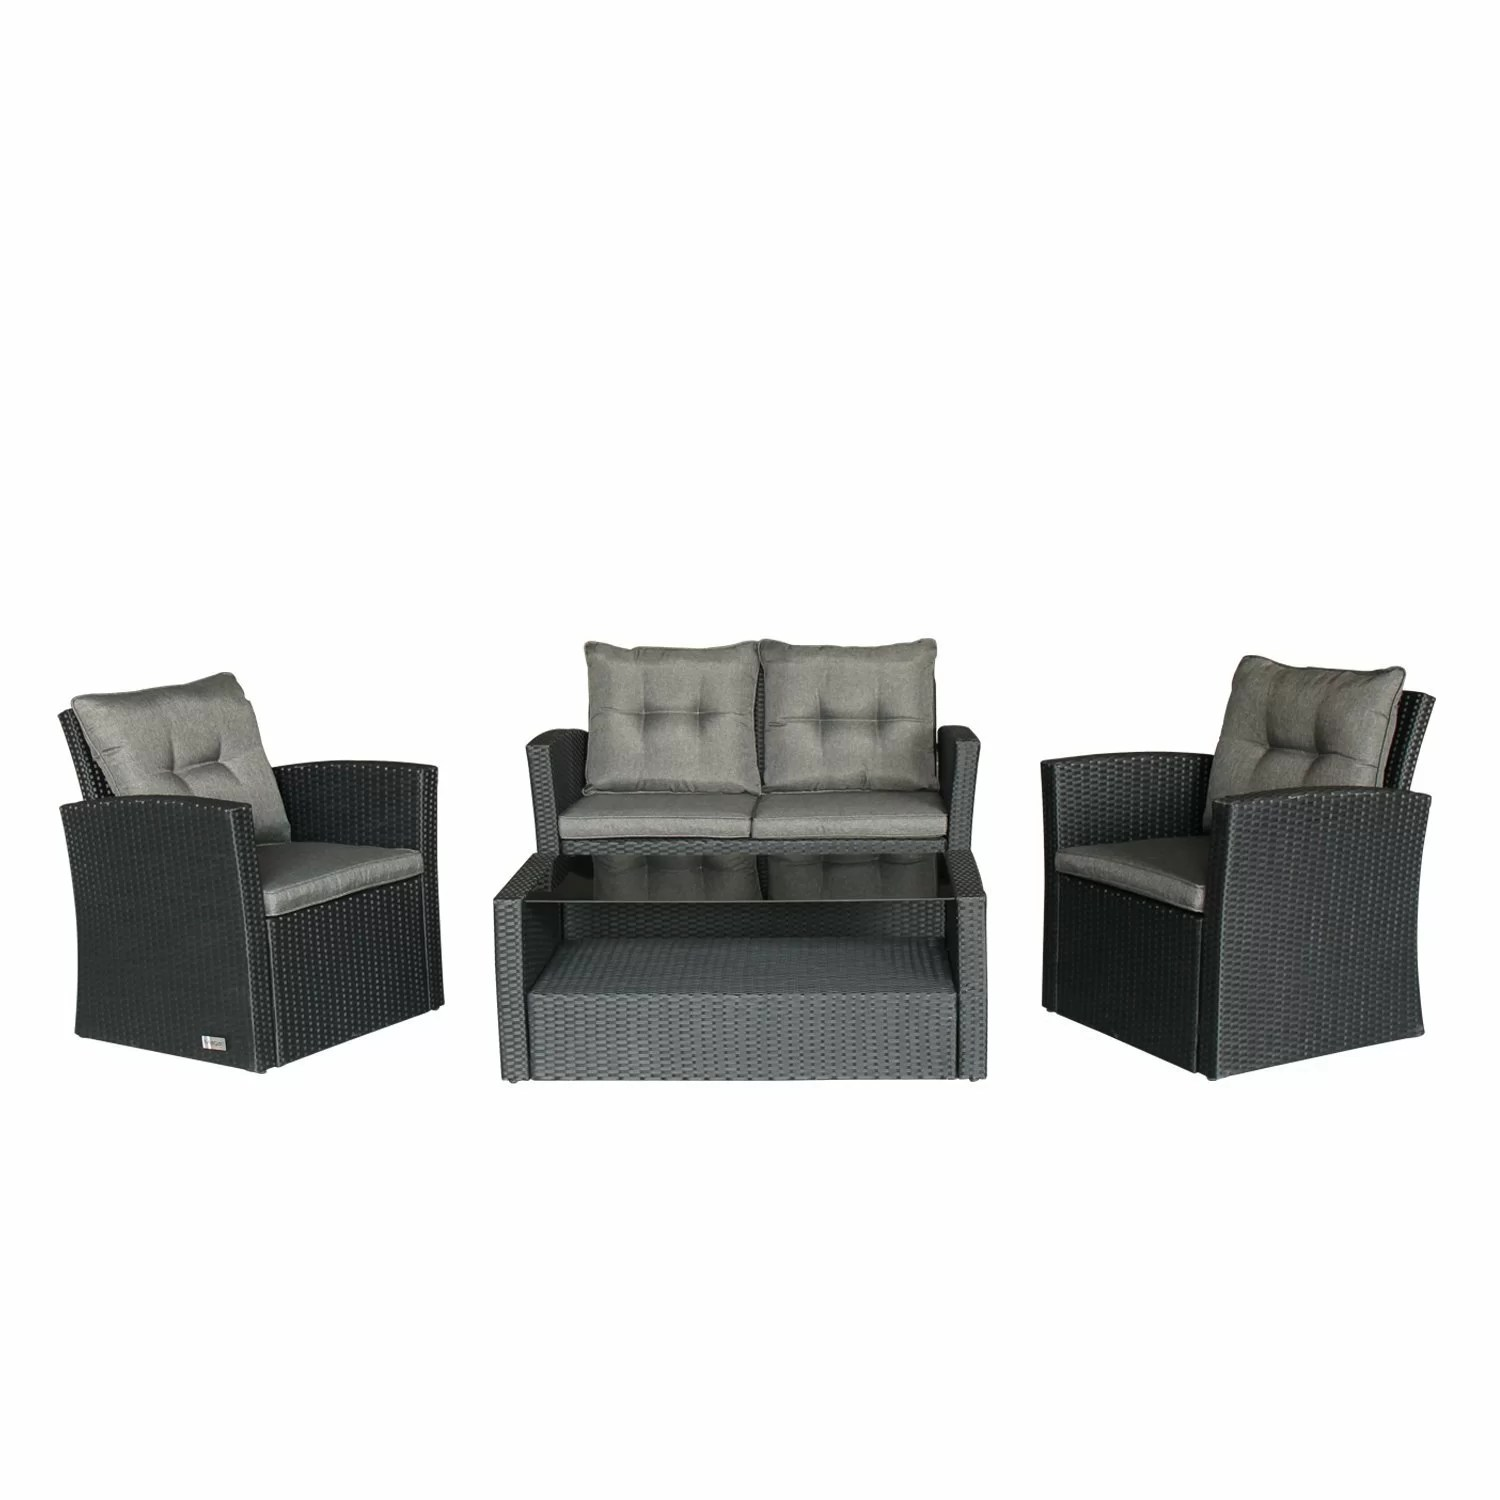 Outdoor Sofa Rattan Leidig Outdoor Complete 4 Piece Rattan Sofa Seating Group